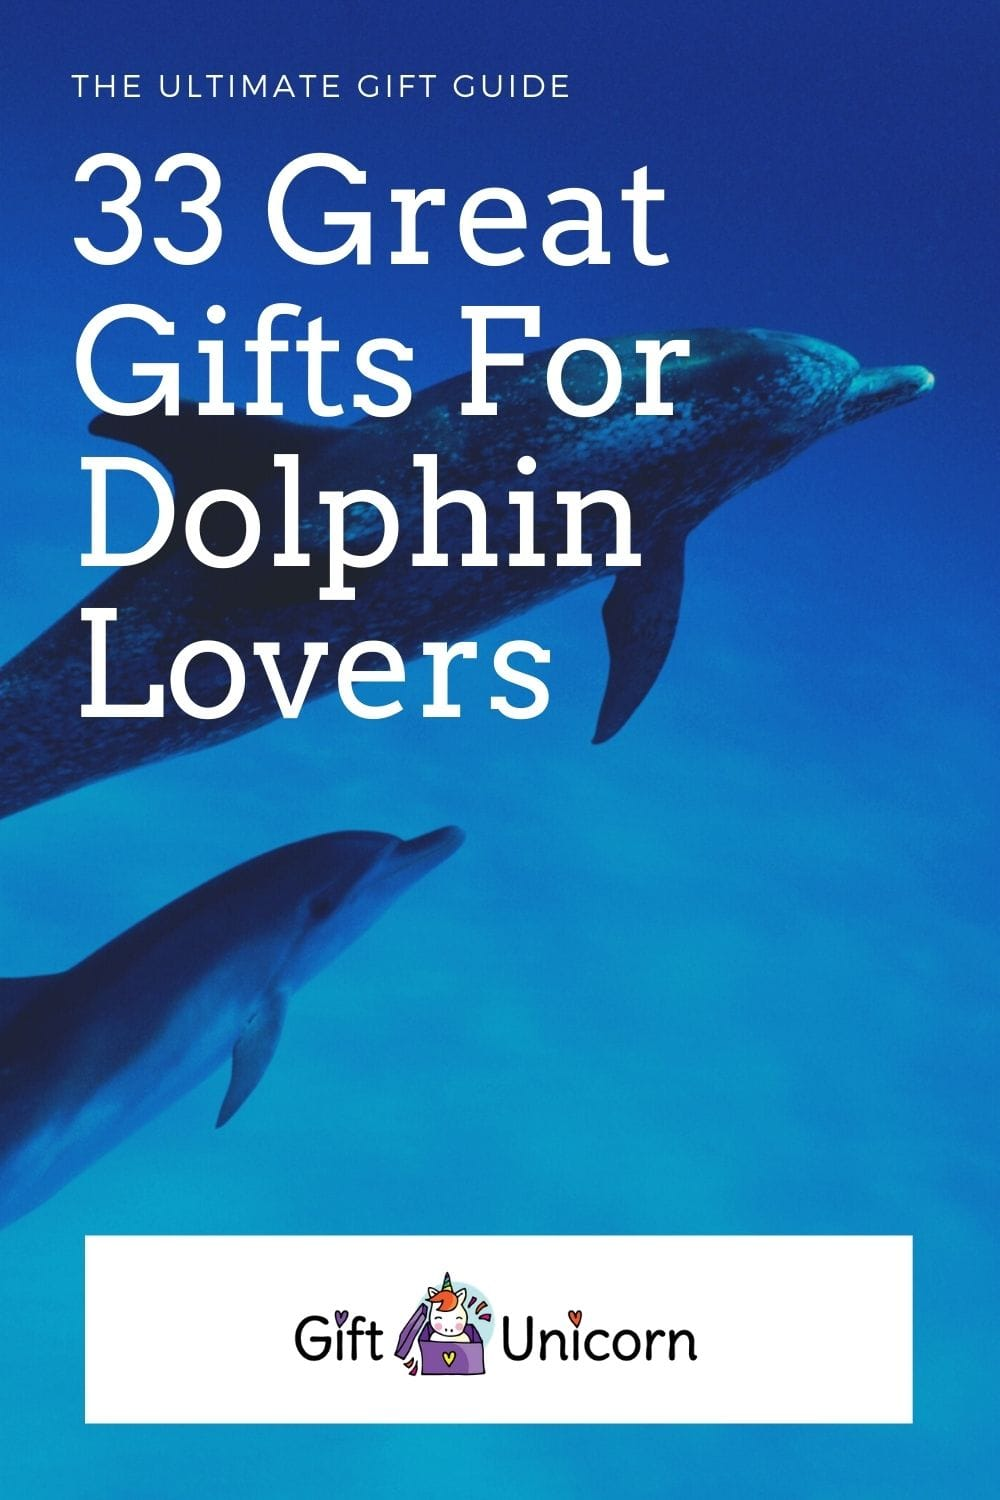 33 Gifts for dolphin lovers pin image